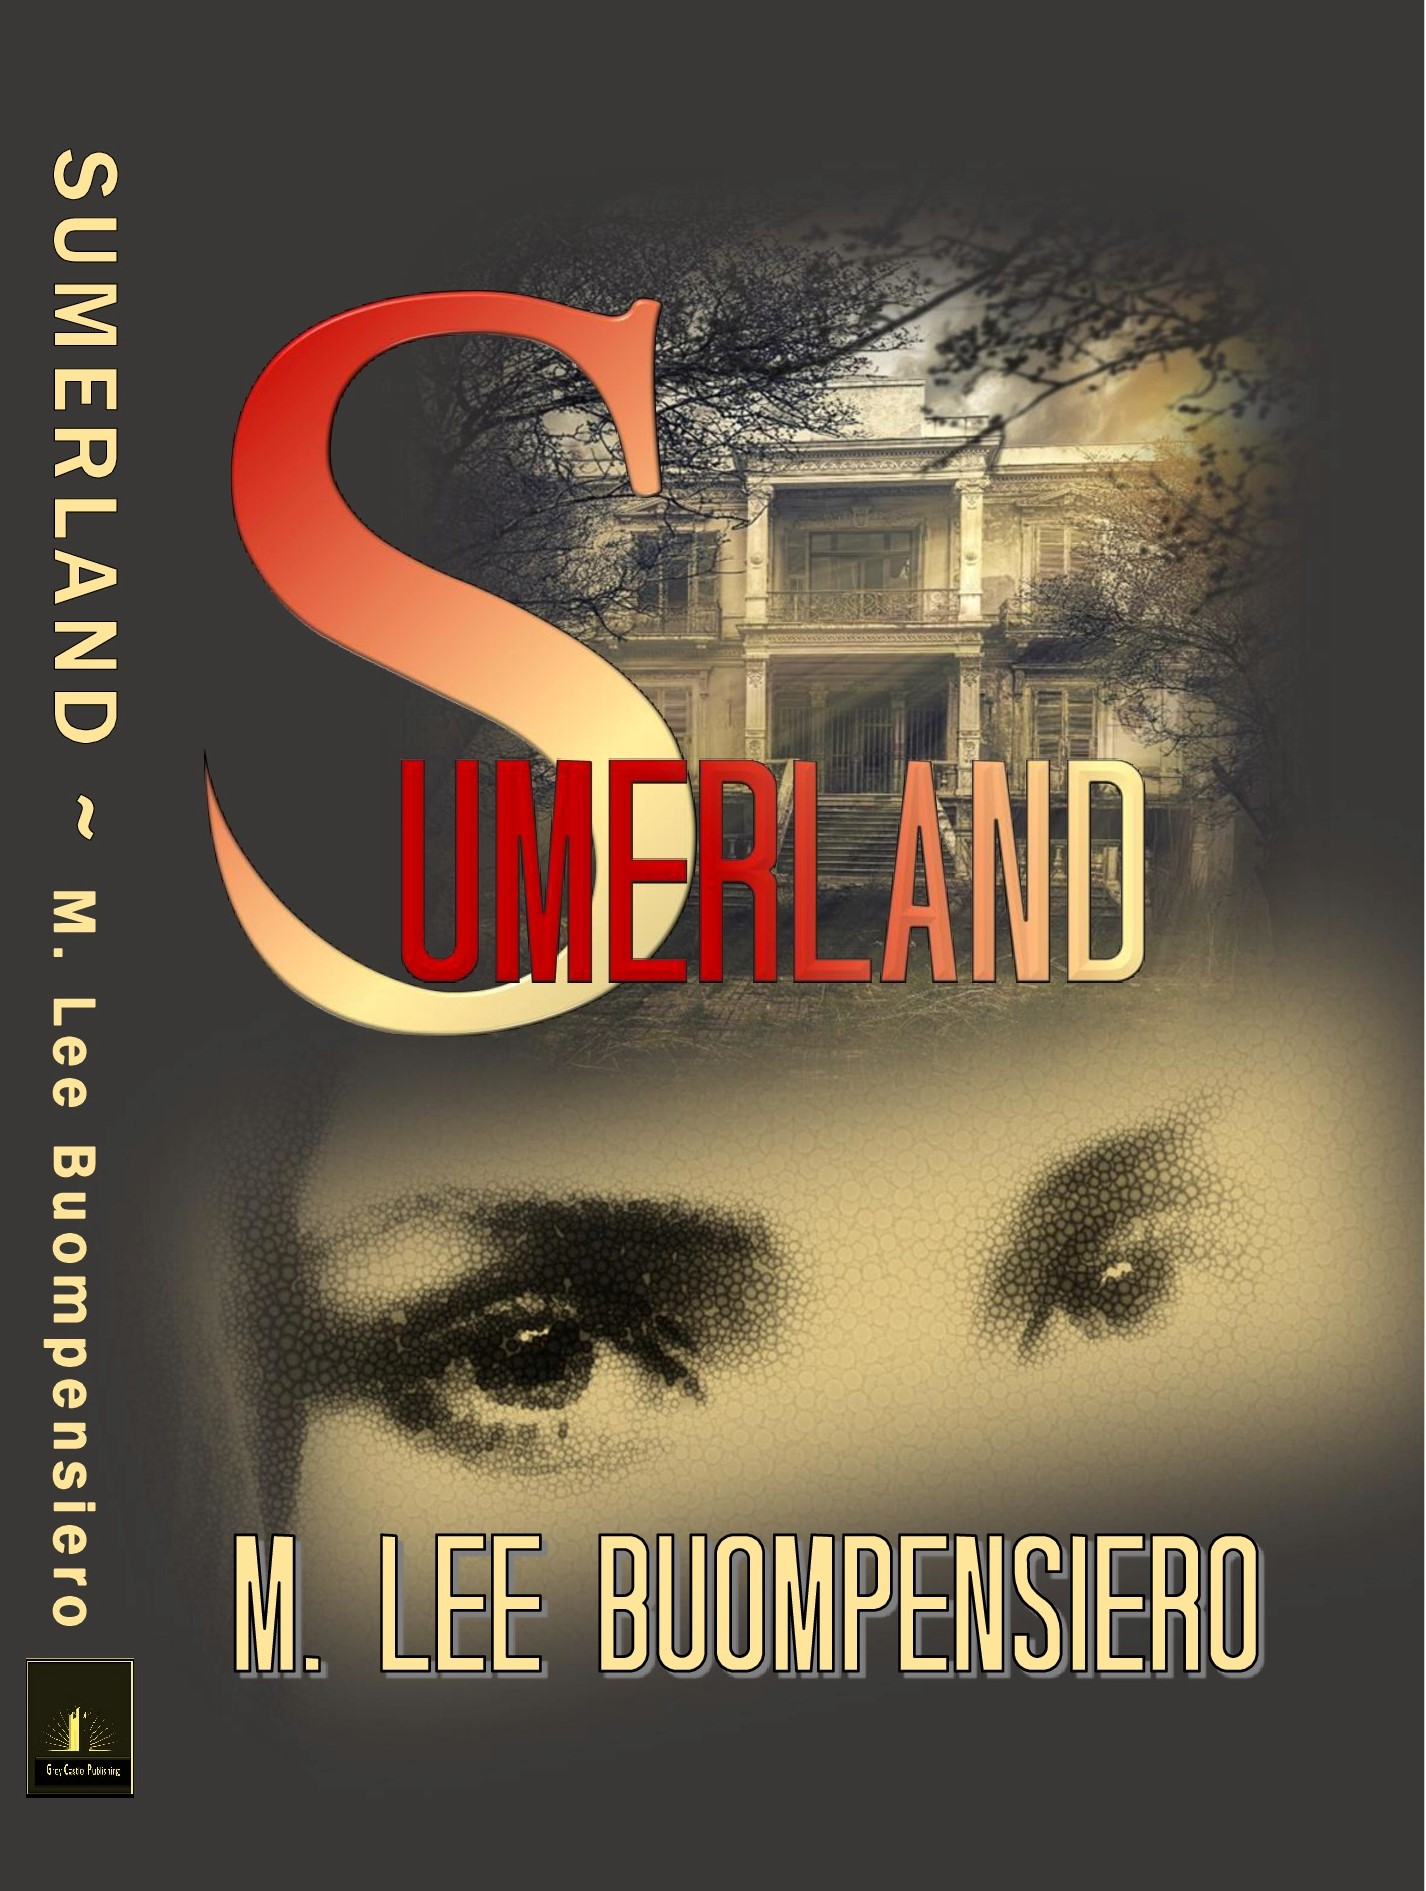 Sumerland Cover-Spine 1-17-19